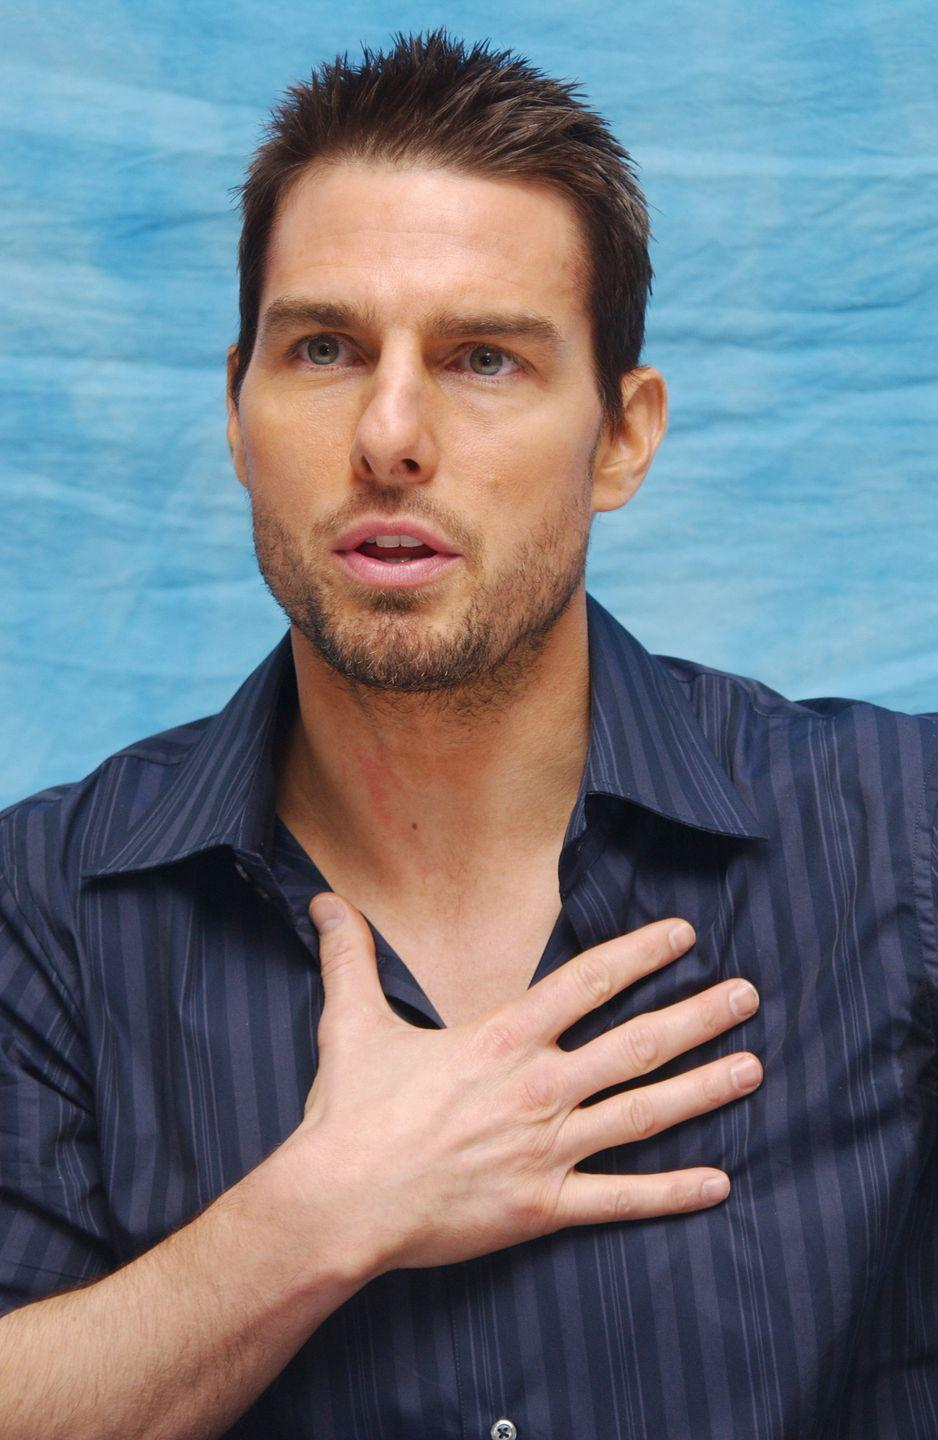 <p>Tom Cruise is <em>always</em> sincere. Here he is, hand on his heart, at a press conference. </p>